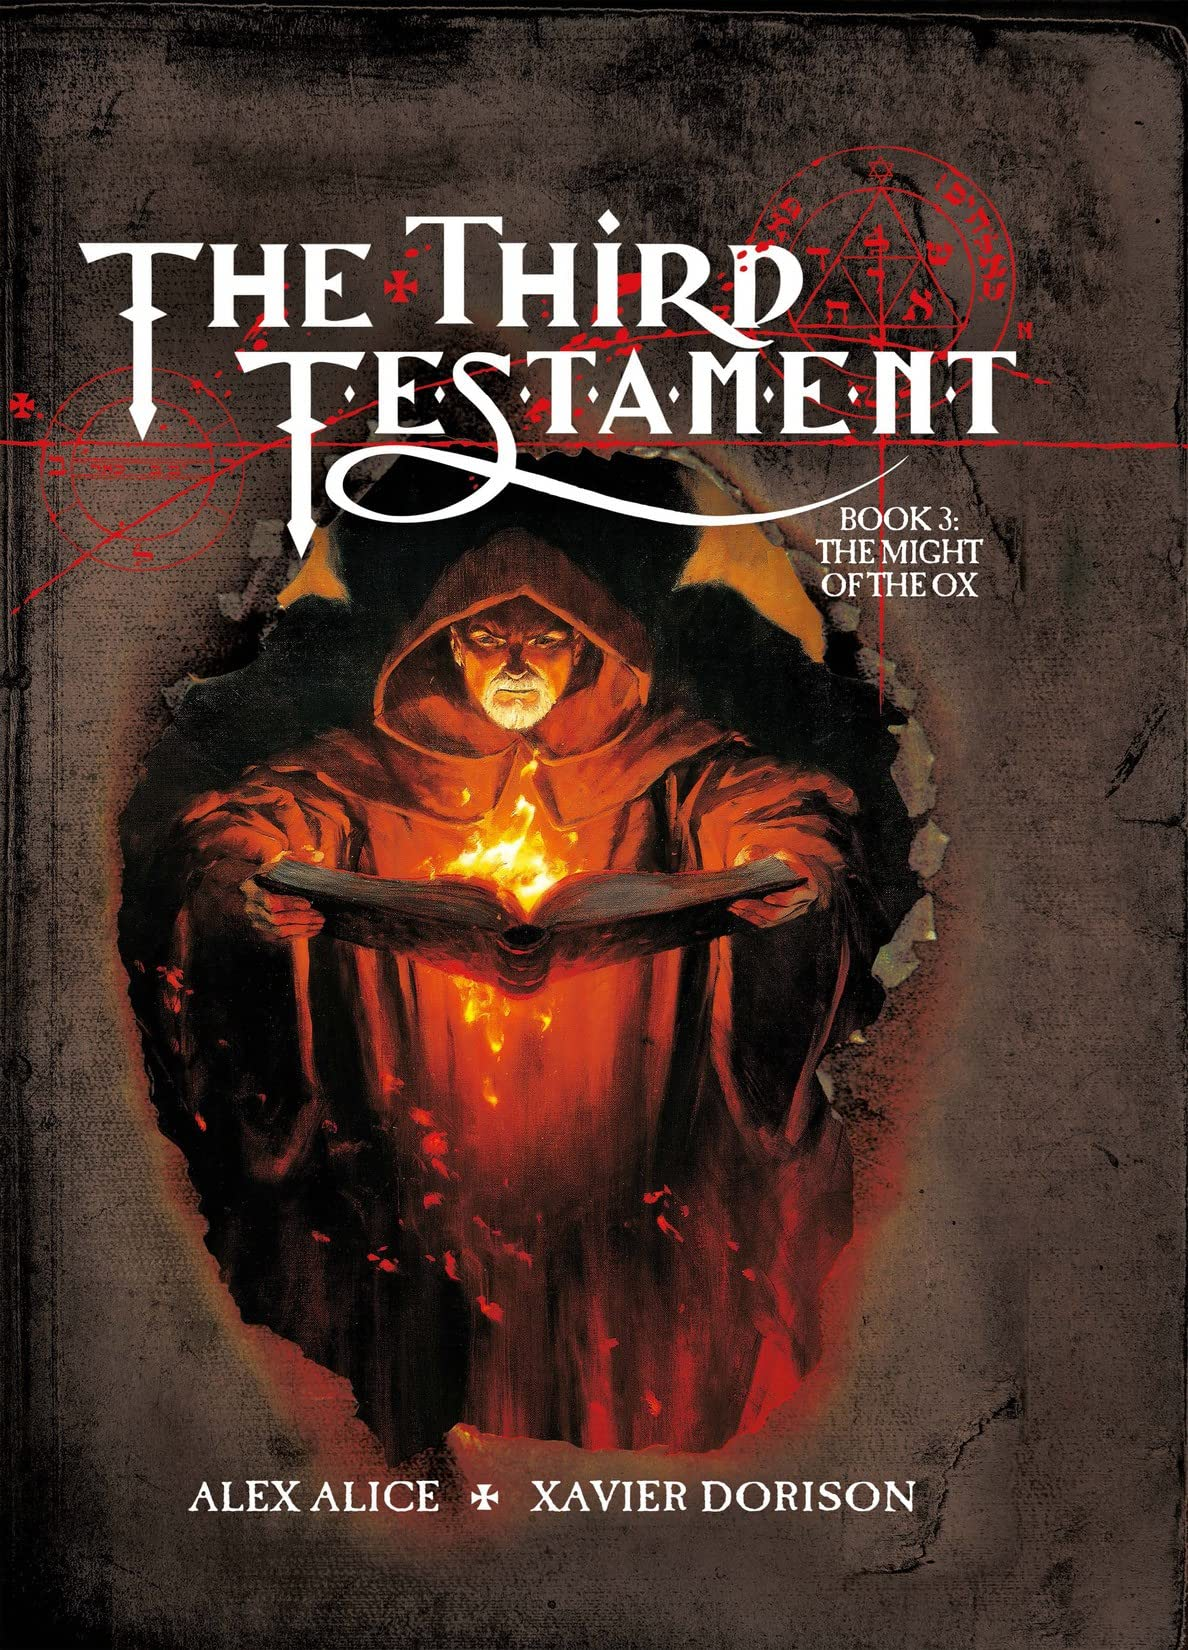 The Third Testament Vol. 3: The Might of the Ox